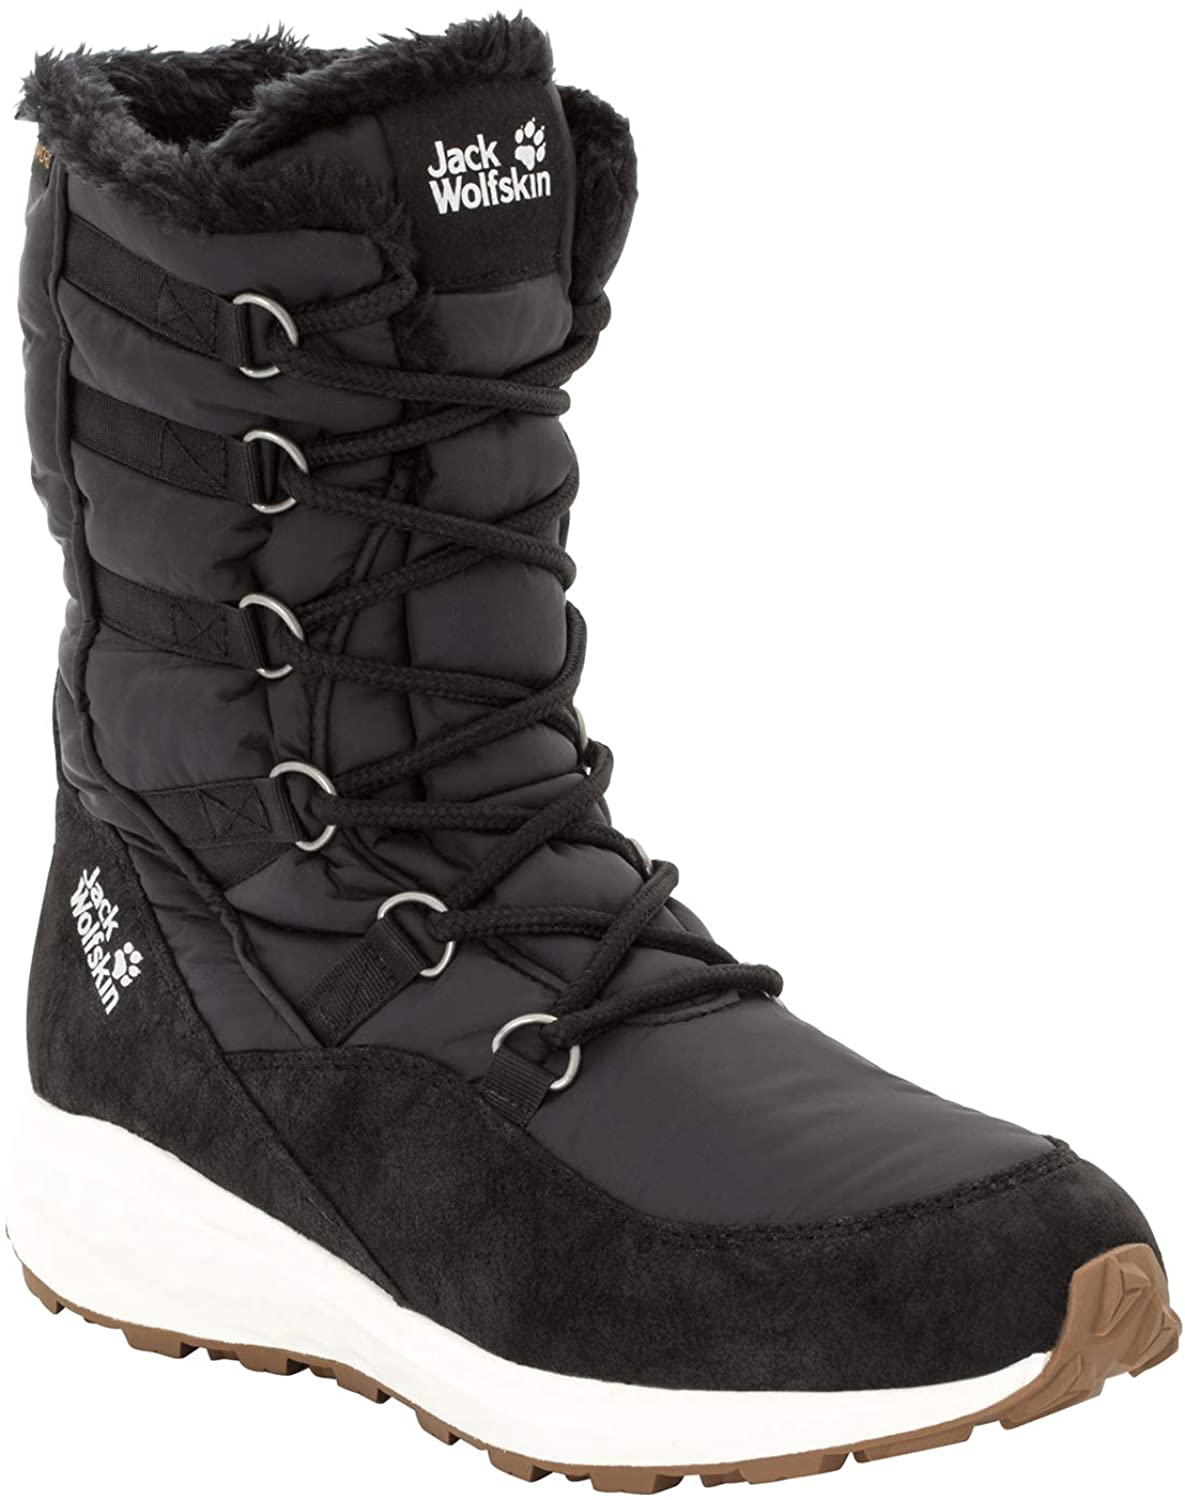 Jack Wolfskin Womens Nevada Texapore HIGH Waterproof Winter Boot with Fleece Lining Snow, BLACK/OFF-WHITE, US Womens 10.5 D US